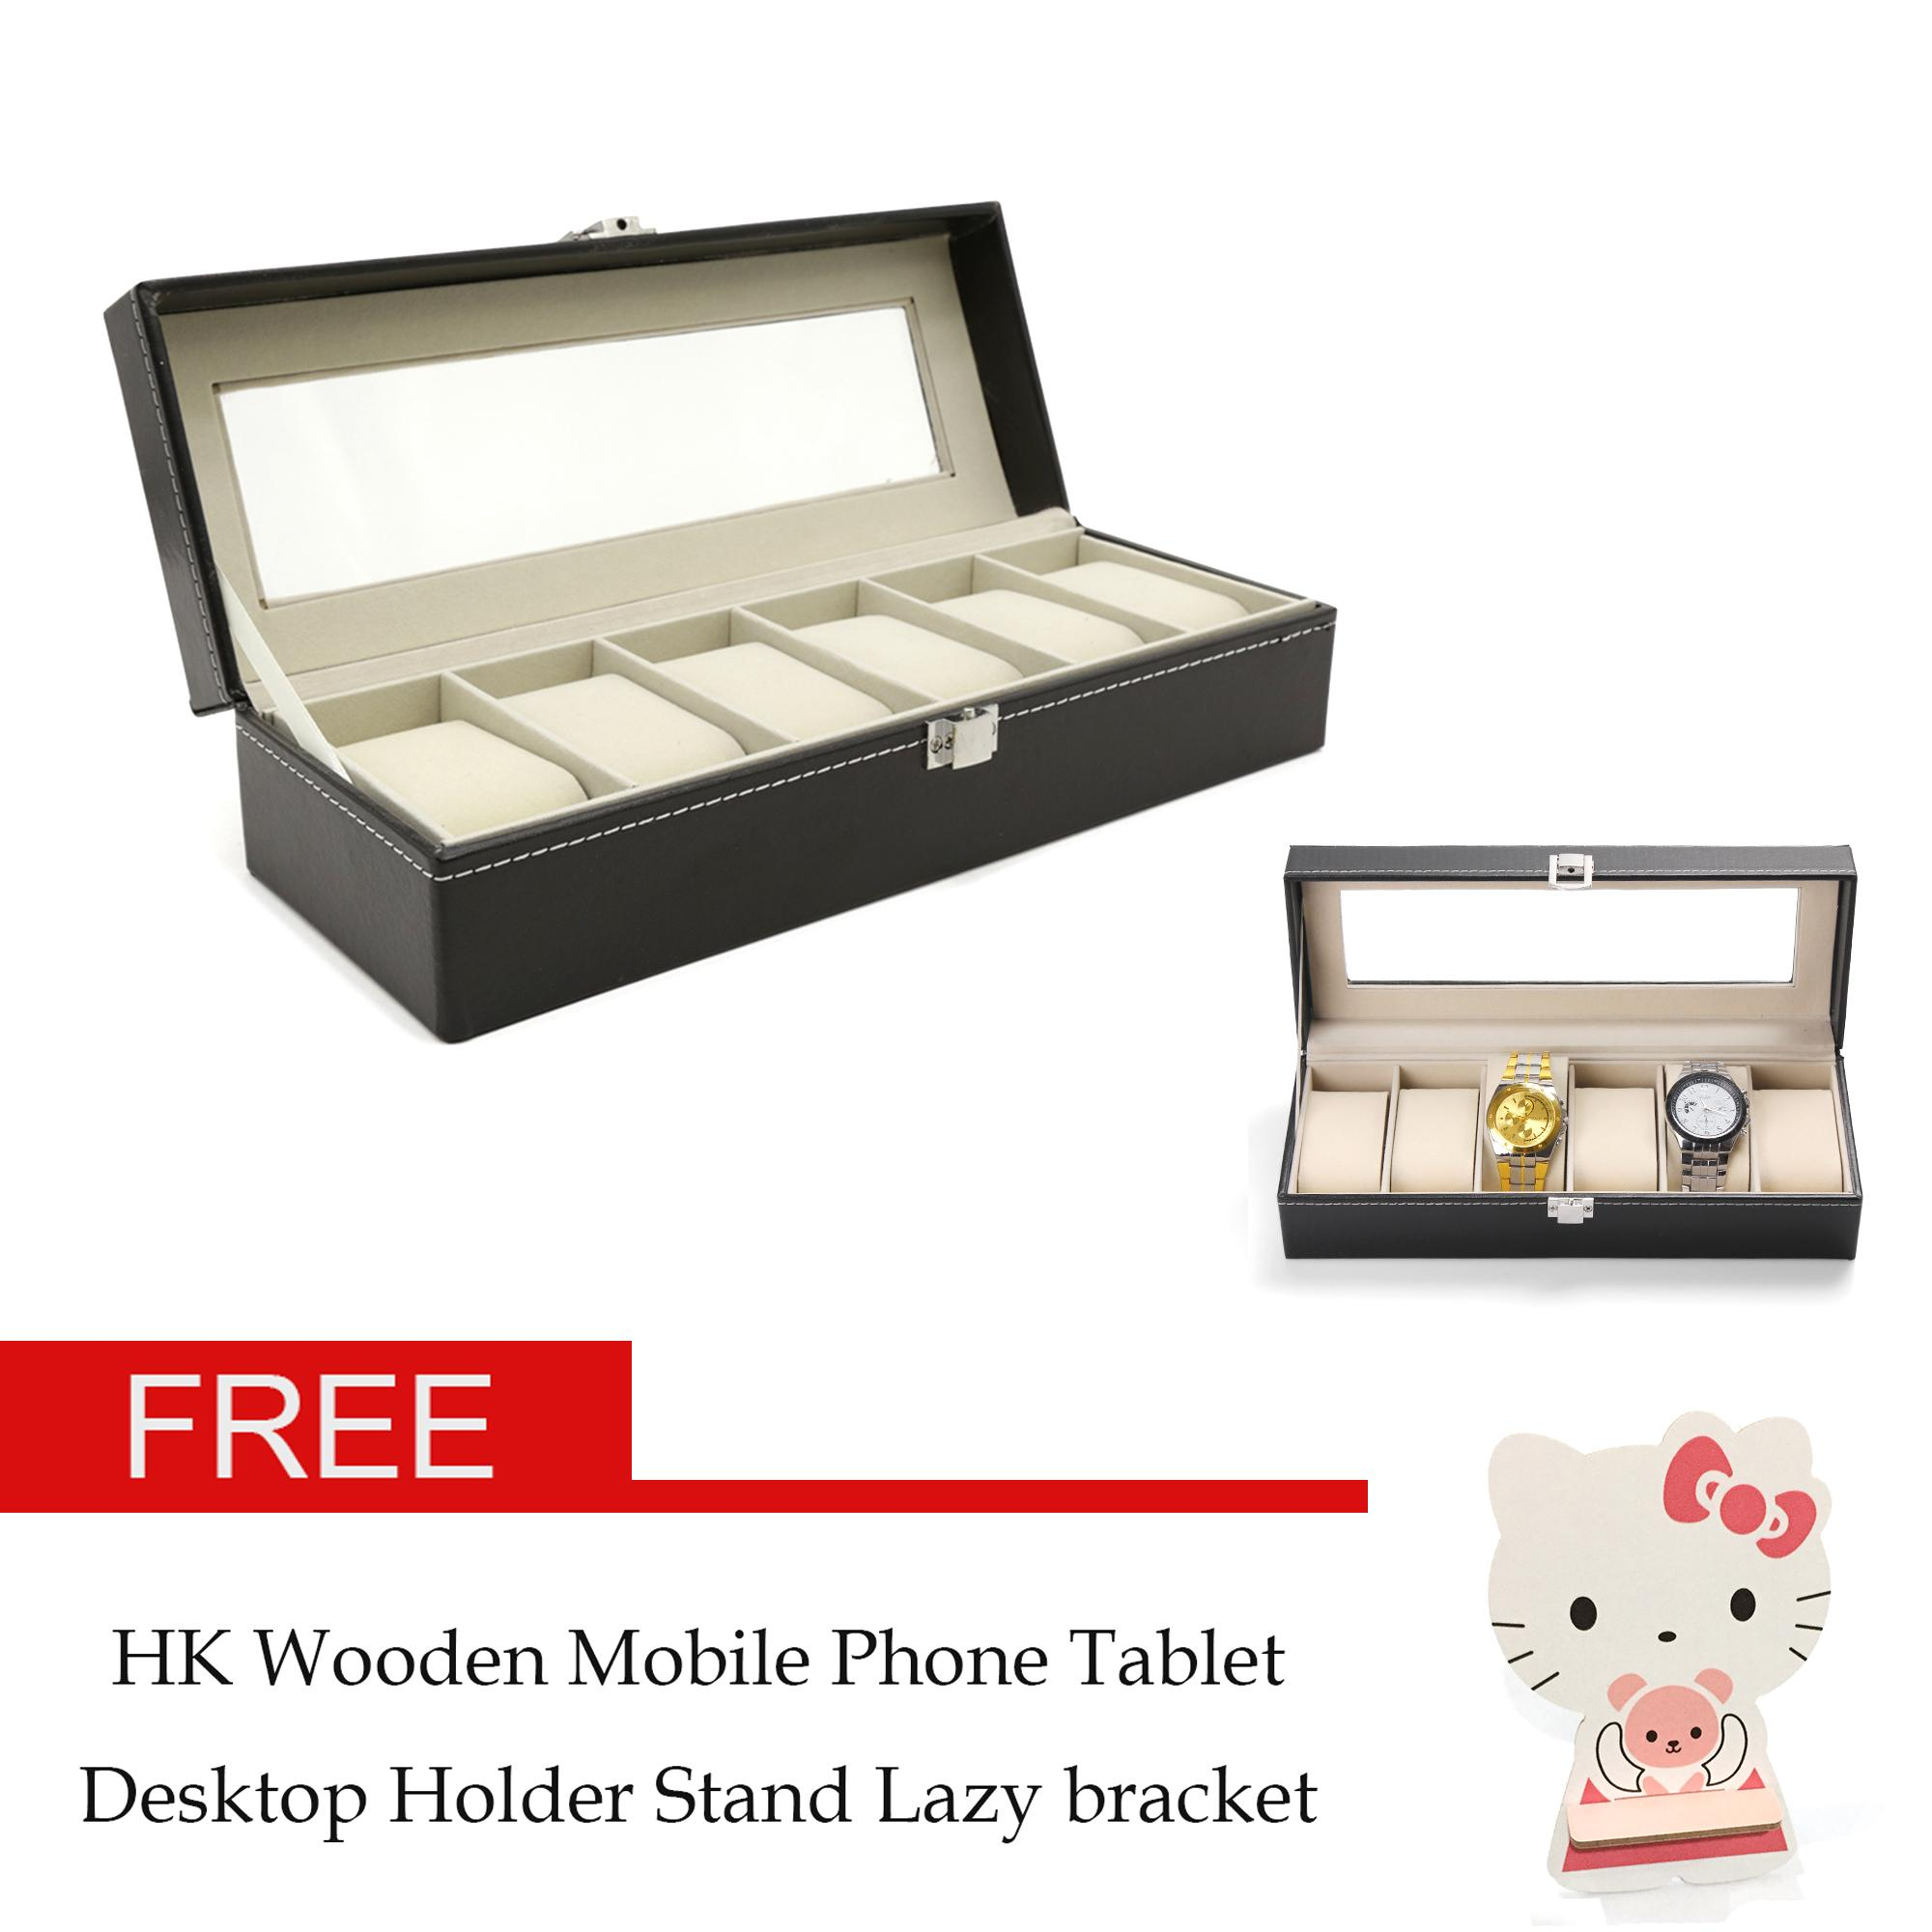 AMOG 6 Grid Slots Jewelry organizer Watches Box Display Storage Box Case Leather Jewelry Case Organizer With 1 pcs free random Wooden Mobile Phone Cellphone Tablet Desktop Holder Stand Lazy bracket